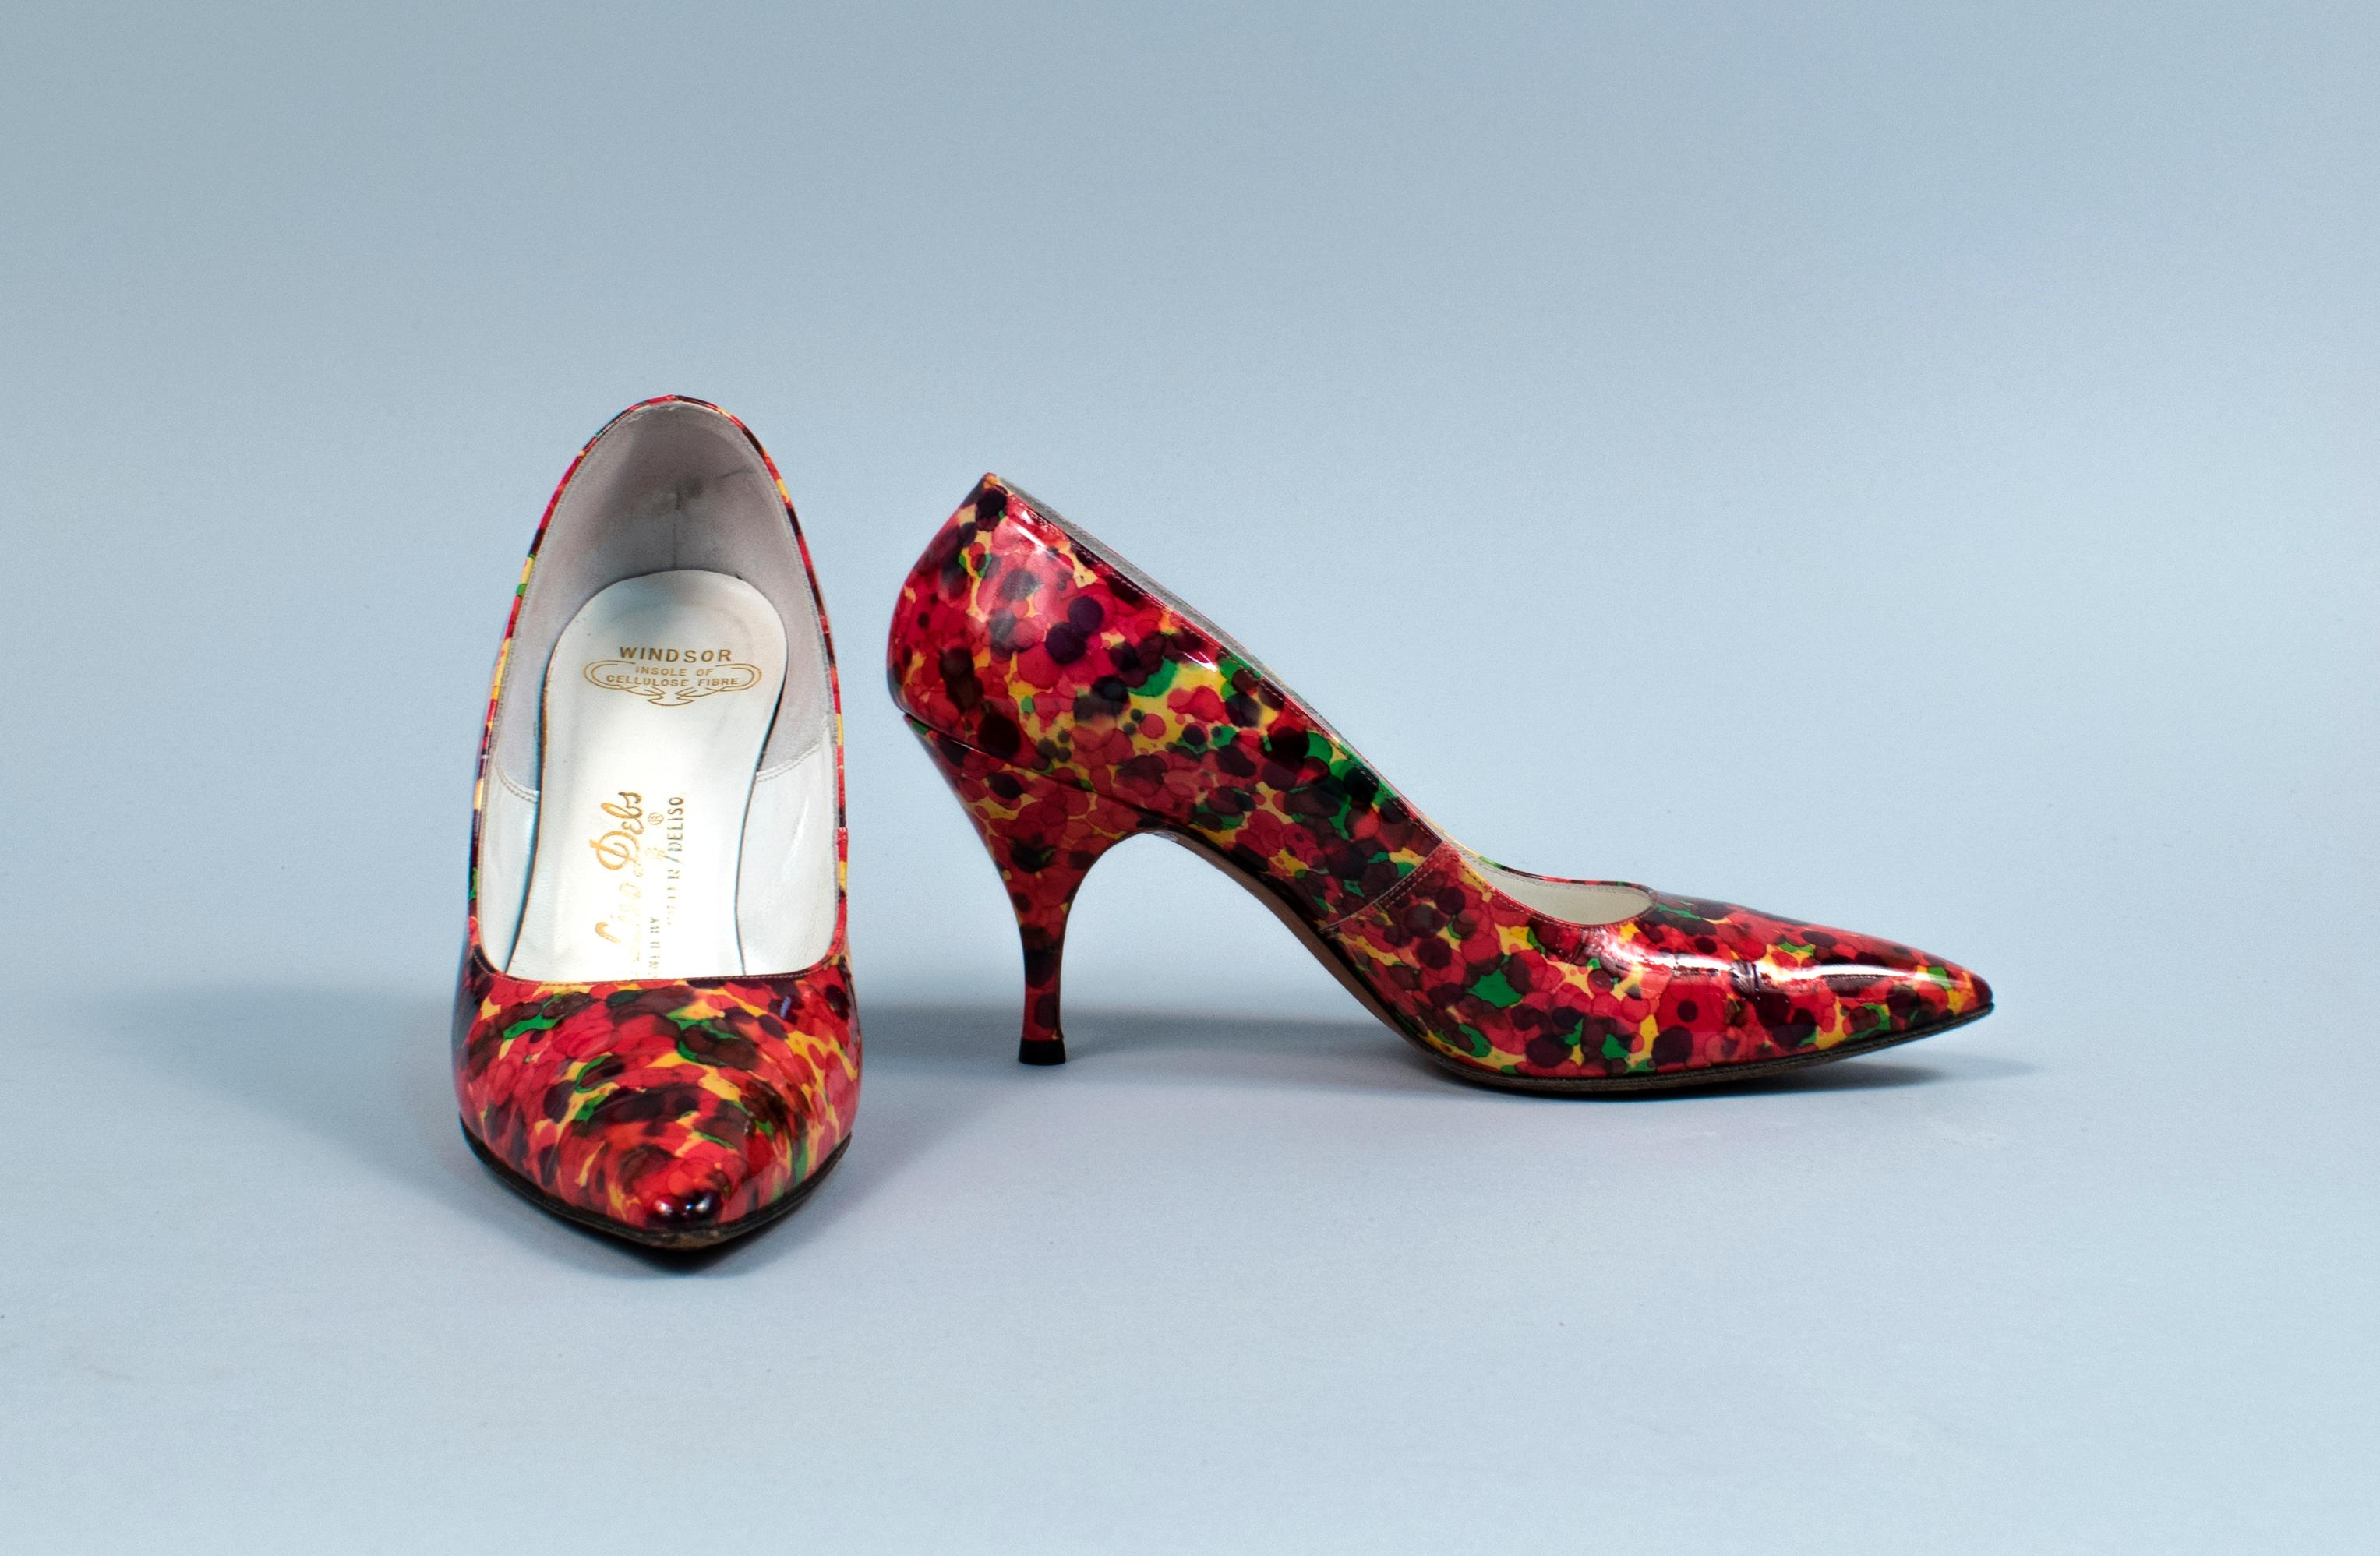 Multicolored high heels, 1950s, Nordstrom, Seattle retailer. Gift of Clara Berg, copyright MOHAI Collection.{ }